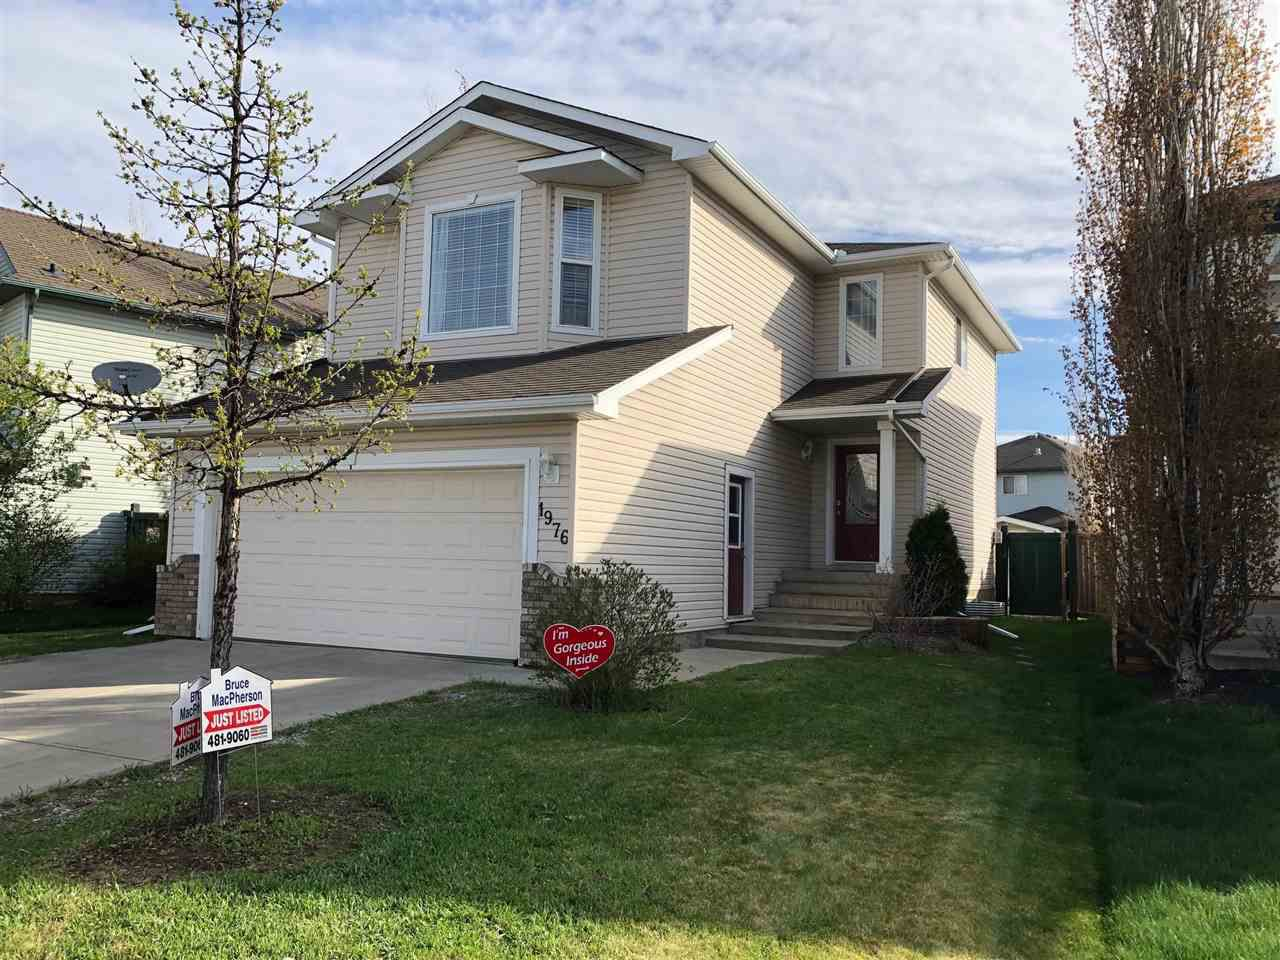 Main Photo: 1976 GARNETT Way in Edmonton: Zone 58 House for sale : MLS®# E4157502